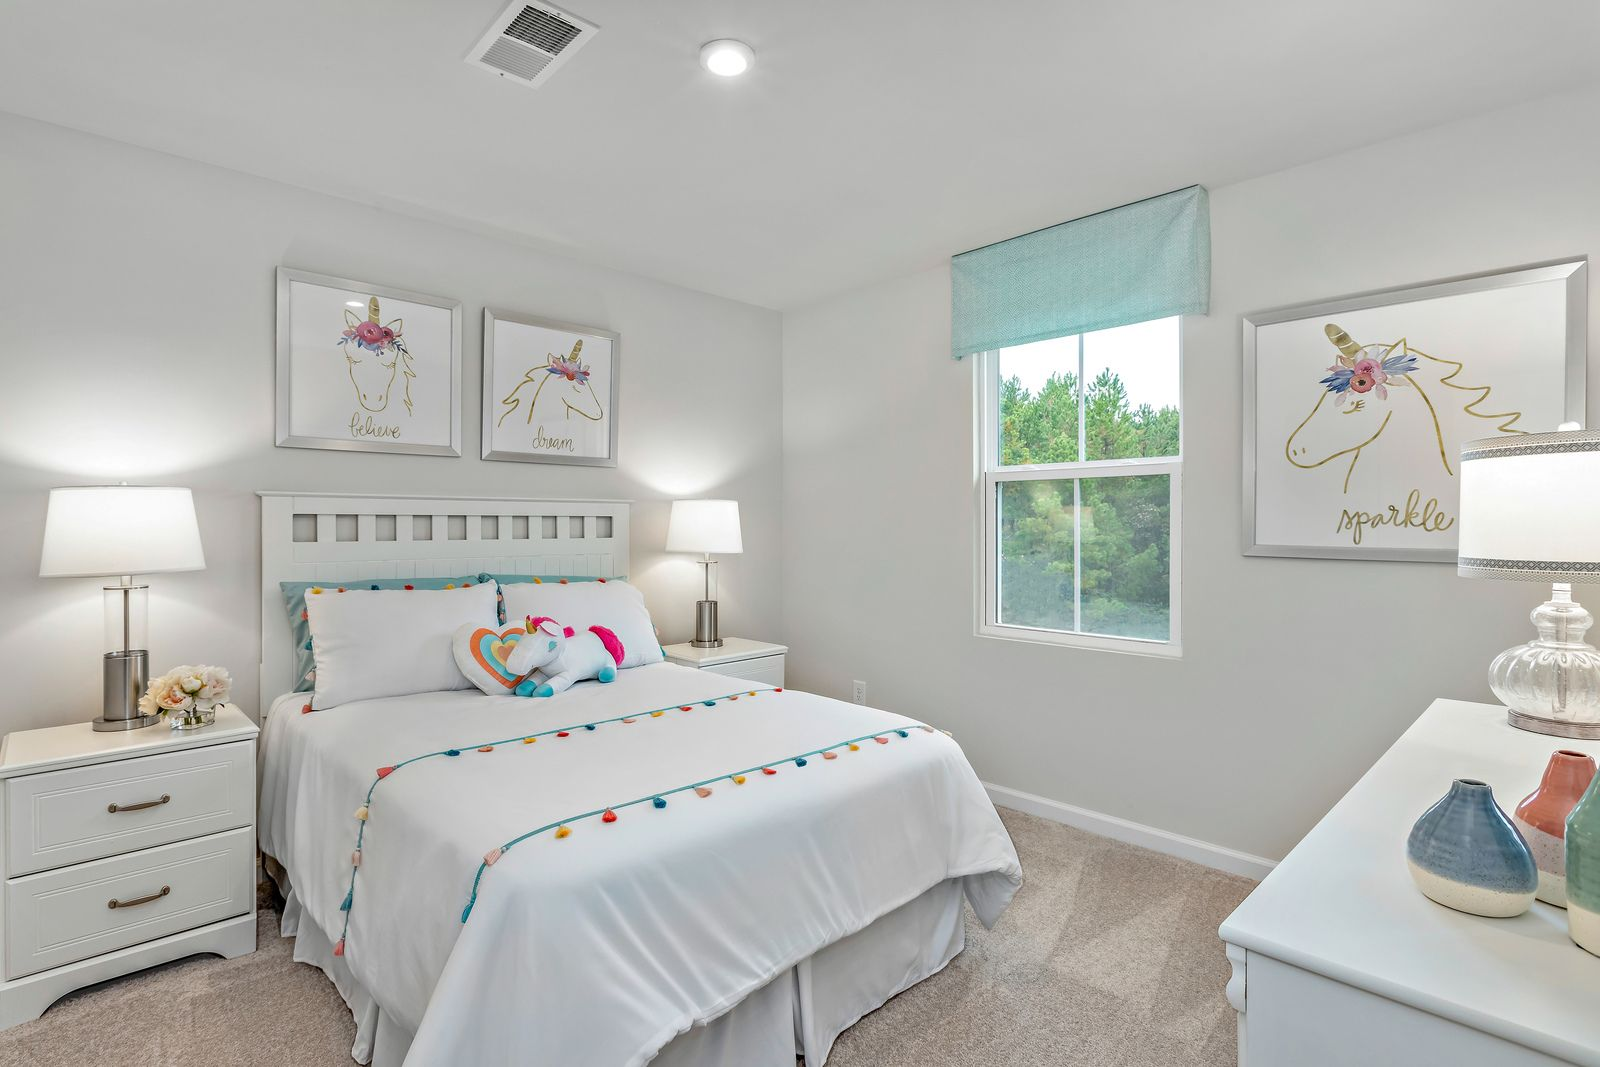 Bedroom featured in the Aspen By Ryan Homes in Akron, OH